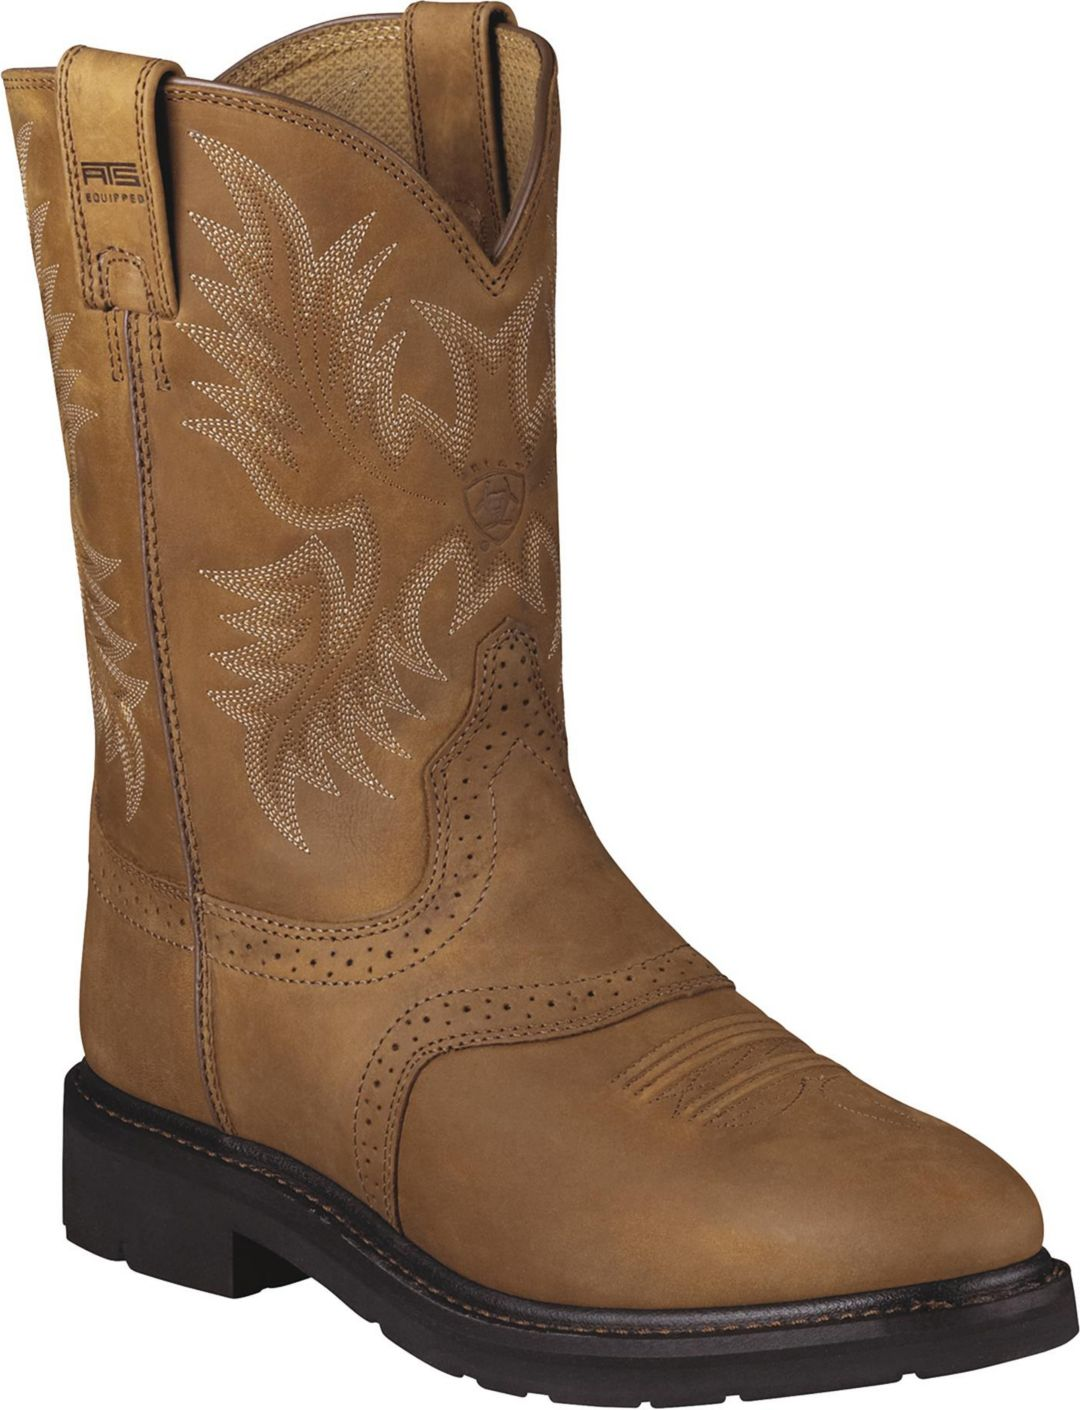 a8ddddb9f55 Ariat Men's Sierra Saddle Work Boots